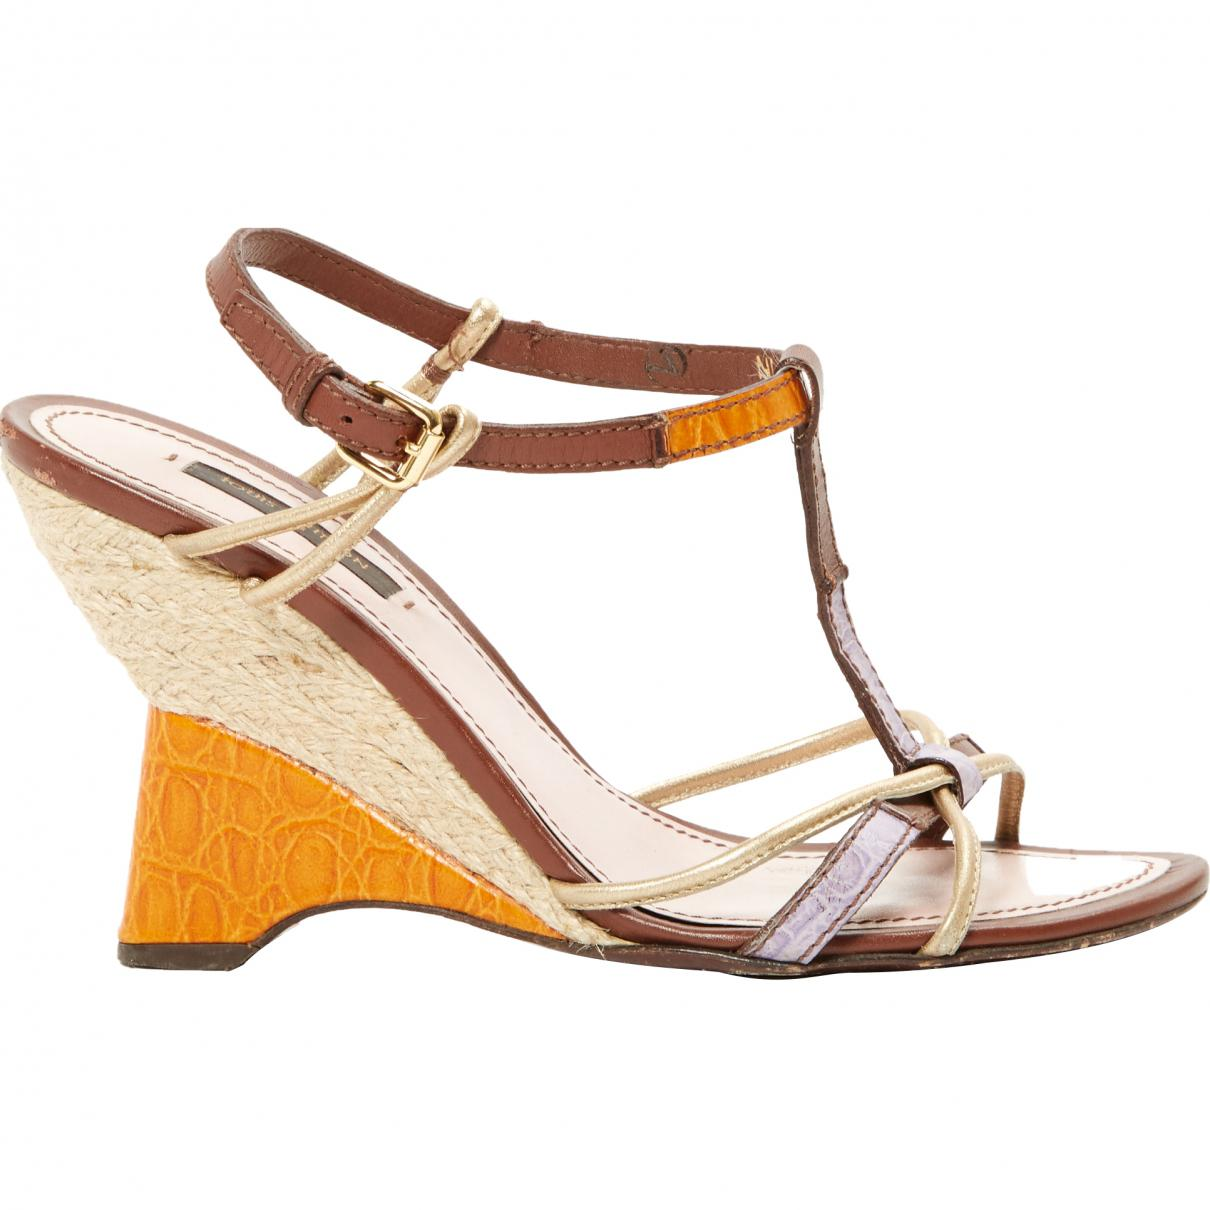 Pre-owned - Orange Leather Sandals Louis Vuitton